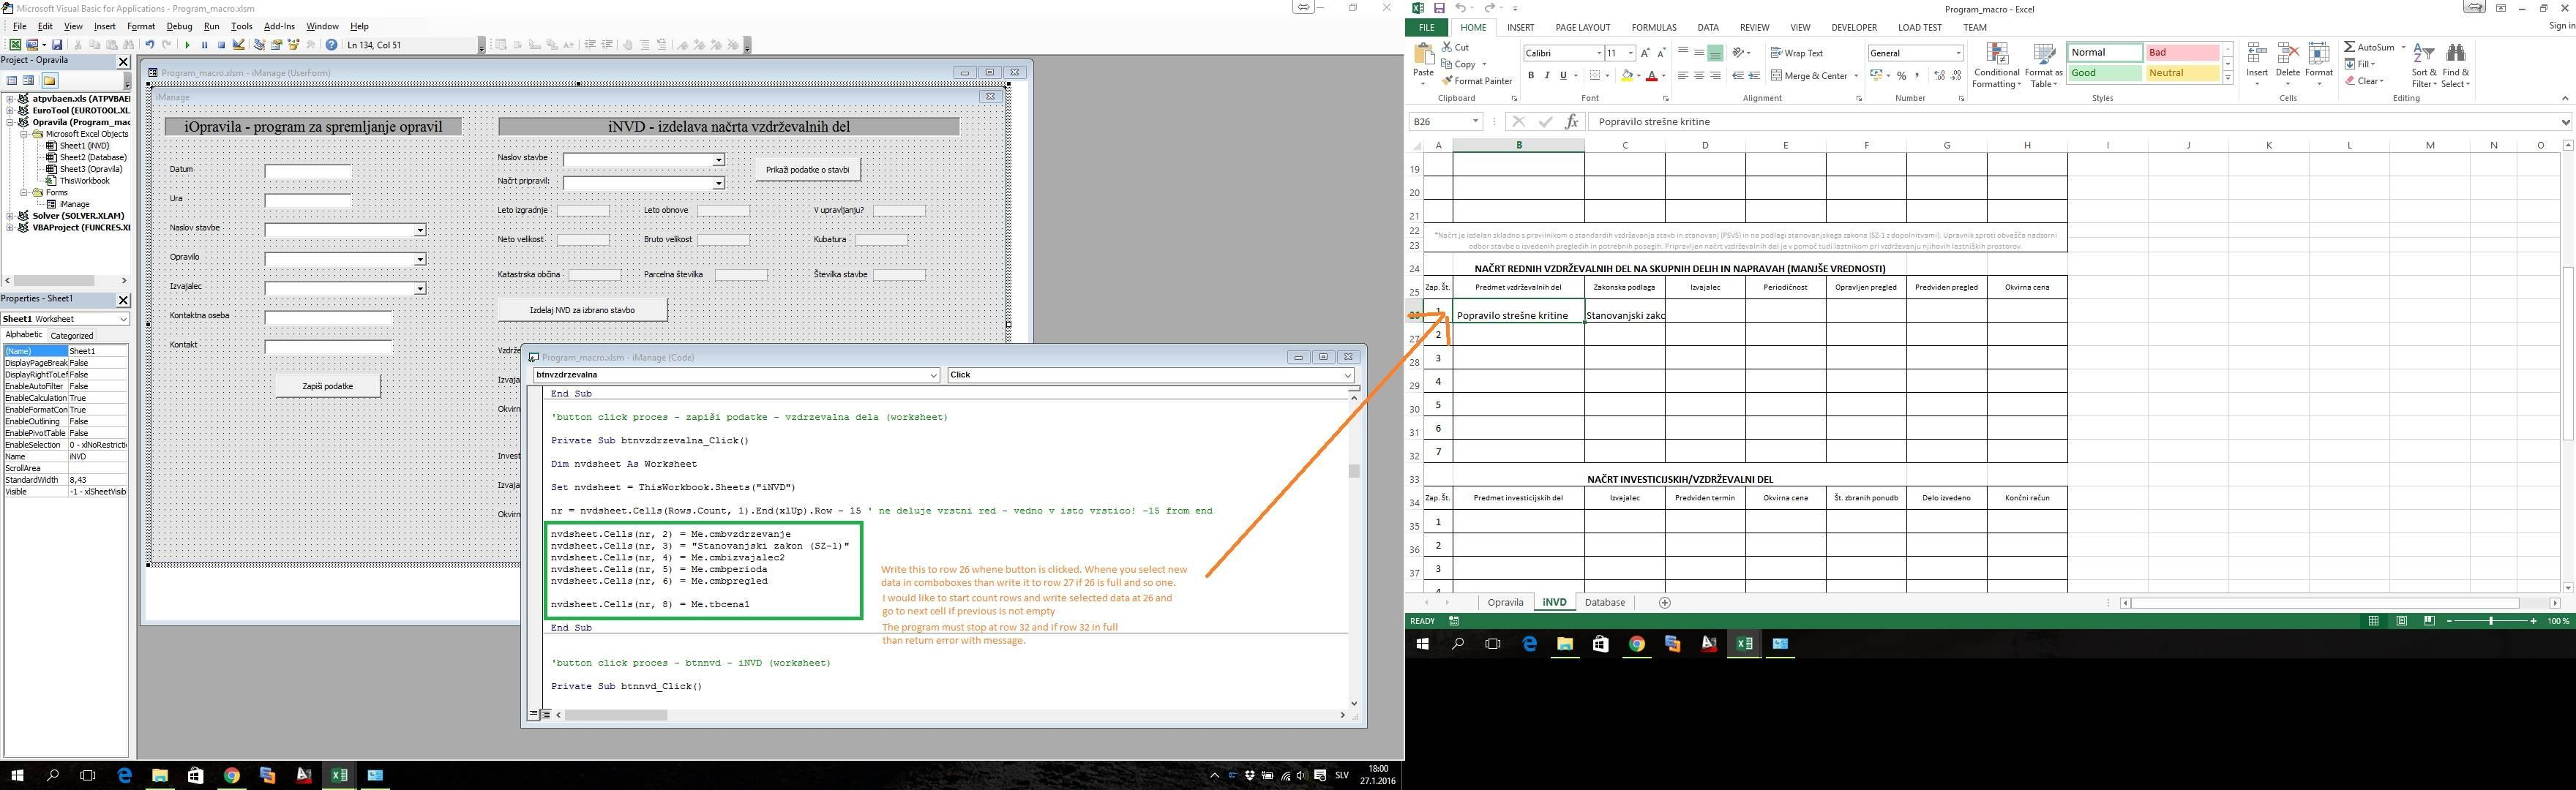 Vba Worksheet Number Of Rows